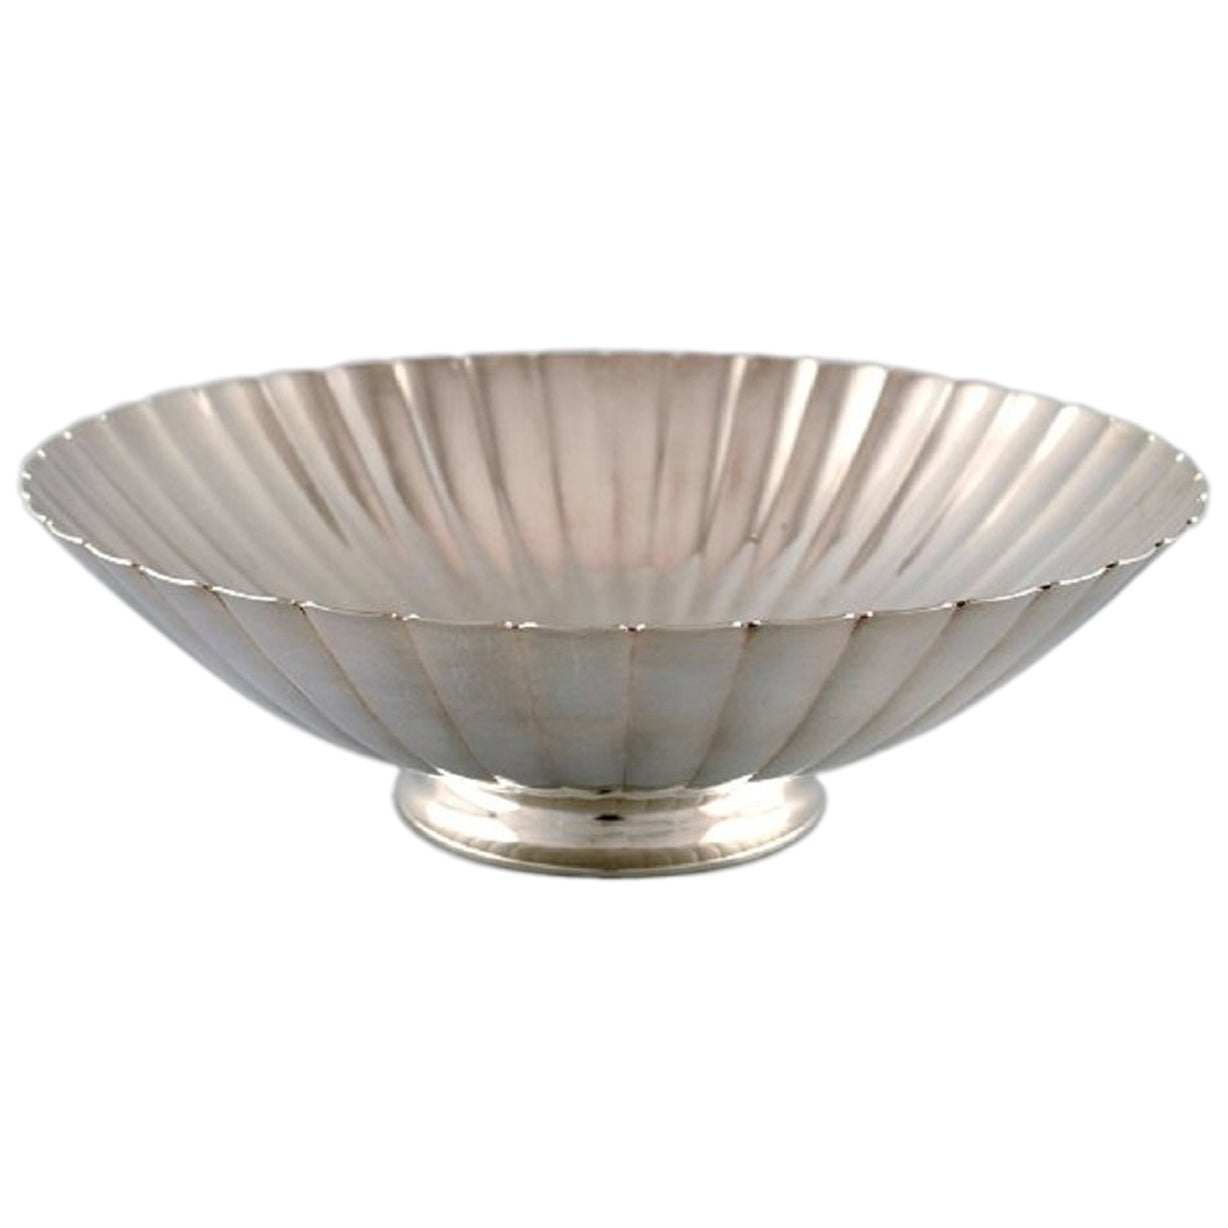 Georg Jensen Large Art Deco Sterling Silver Bowl in Fluted Style